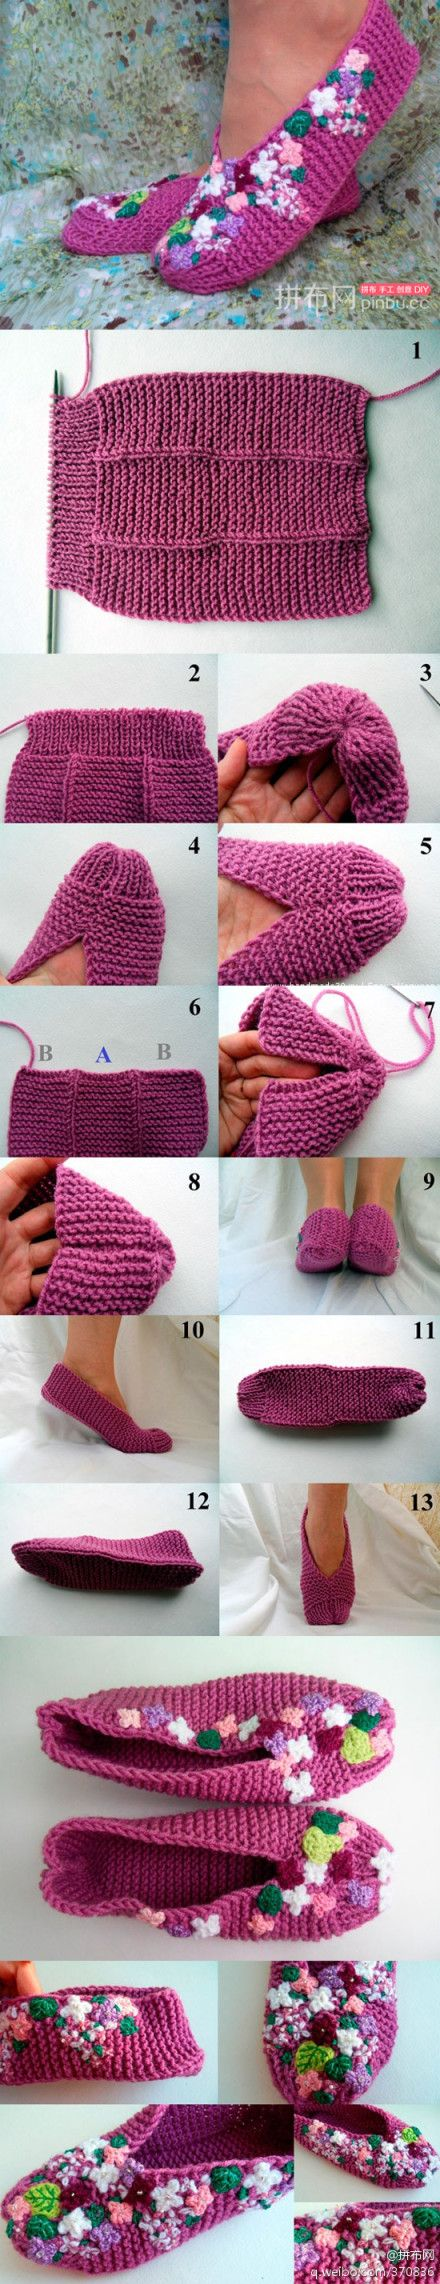 Knitting Shoes Tutorial : Knitted slippers tutorial knitting and crochet pinterest